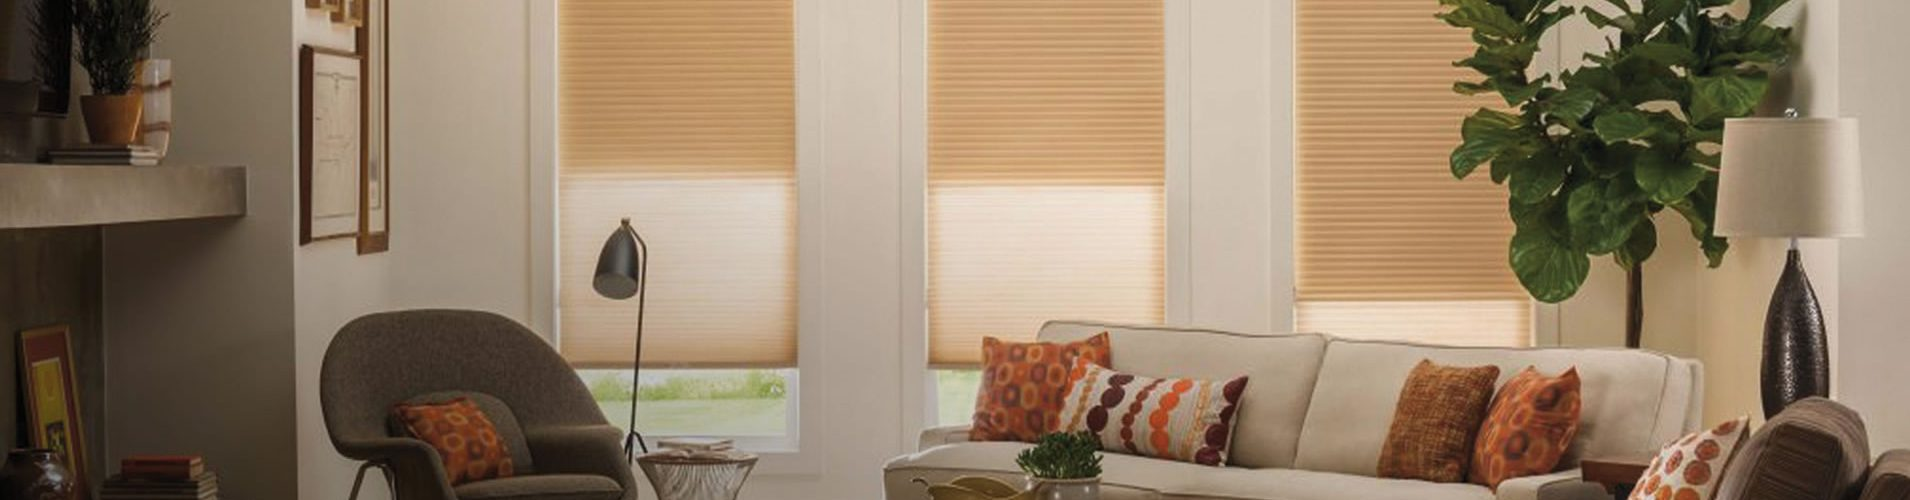 Dallas Tx Cellular Shades Honeycomb Pleats Fort Worth Texas